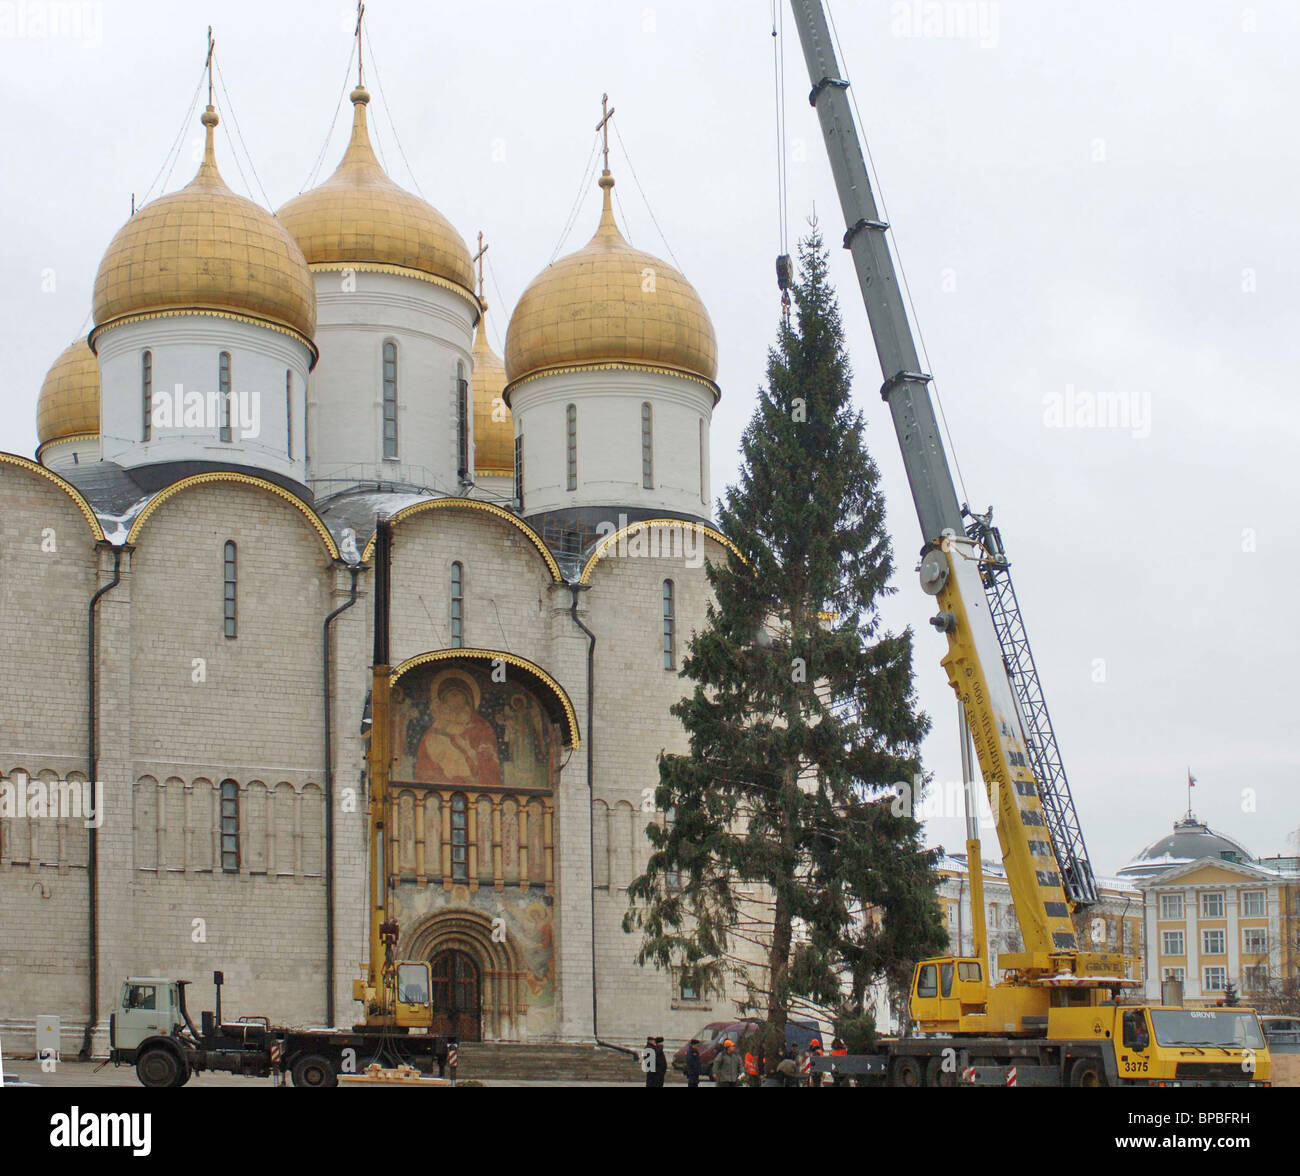 Chief Christmas Tree of Russia arrives in Moscow from Veliki Ustyug - Stock Image